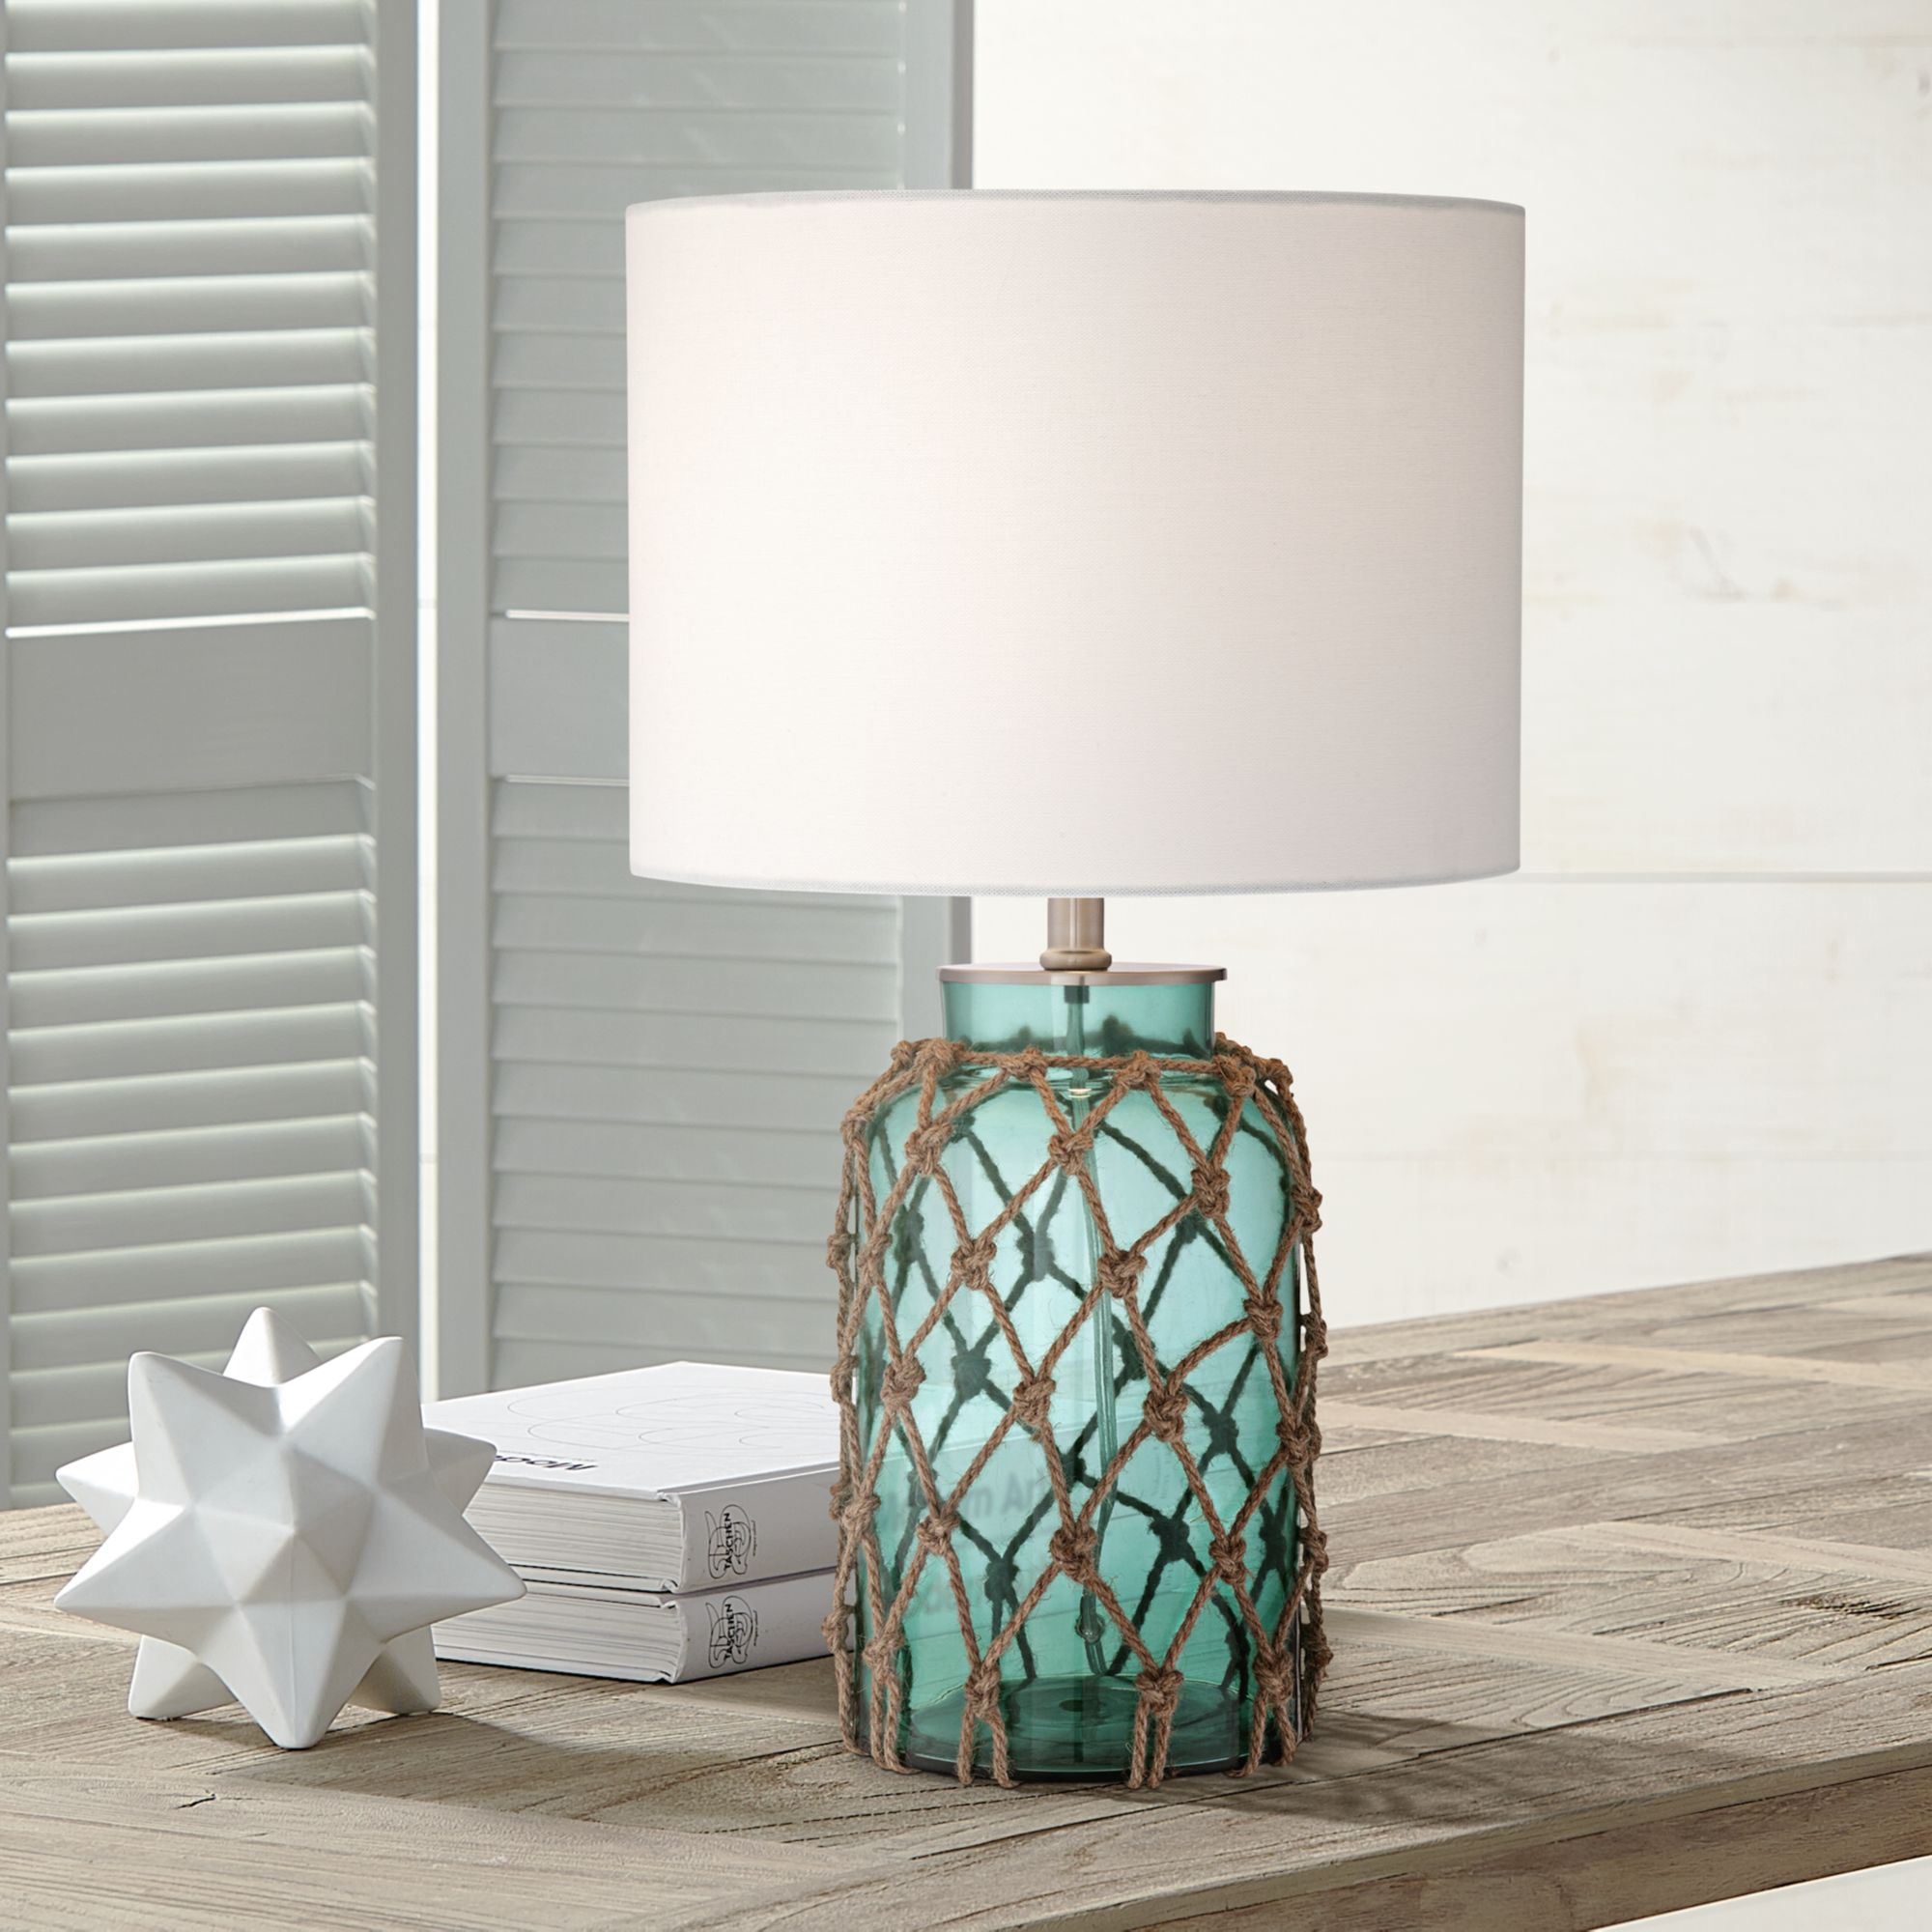 lighting nautical accent table lamp coastal blue green glass drum rope off white shade for living room family bedroom end with door ikea occasional corner mirror cabinet curved